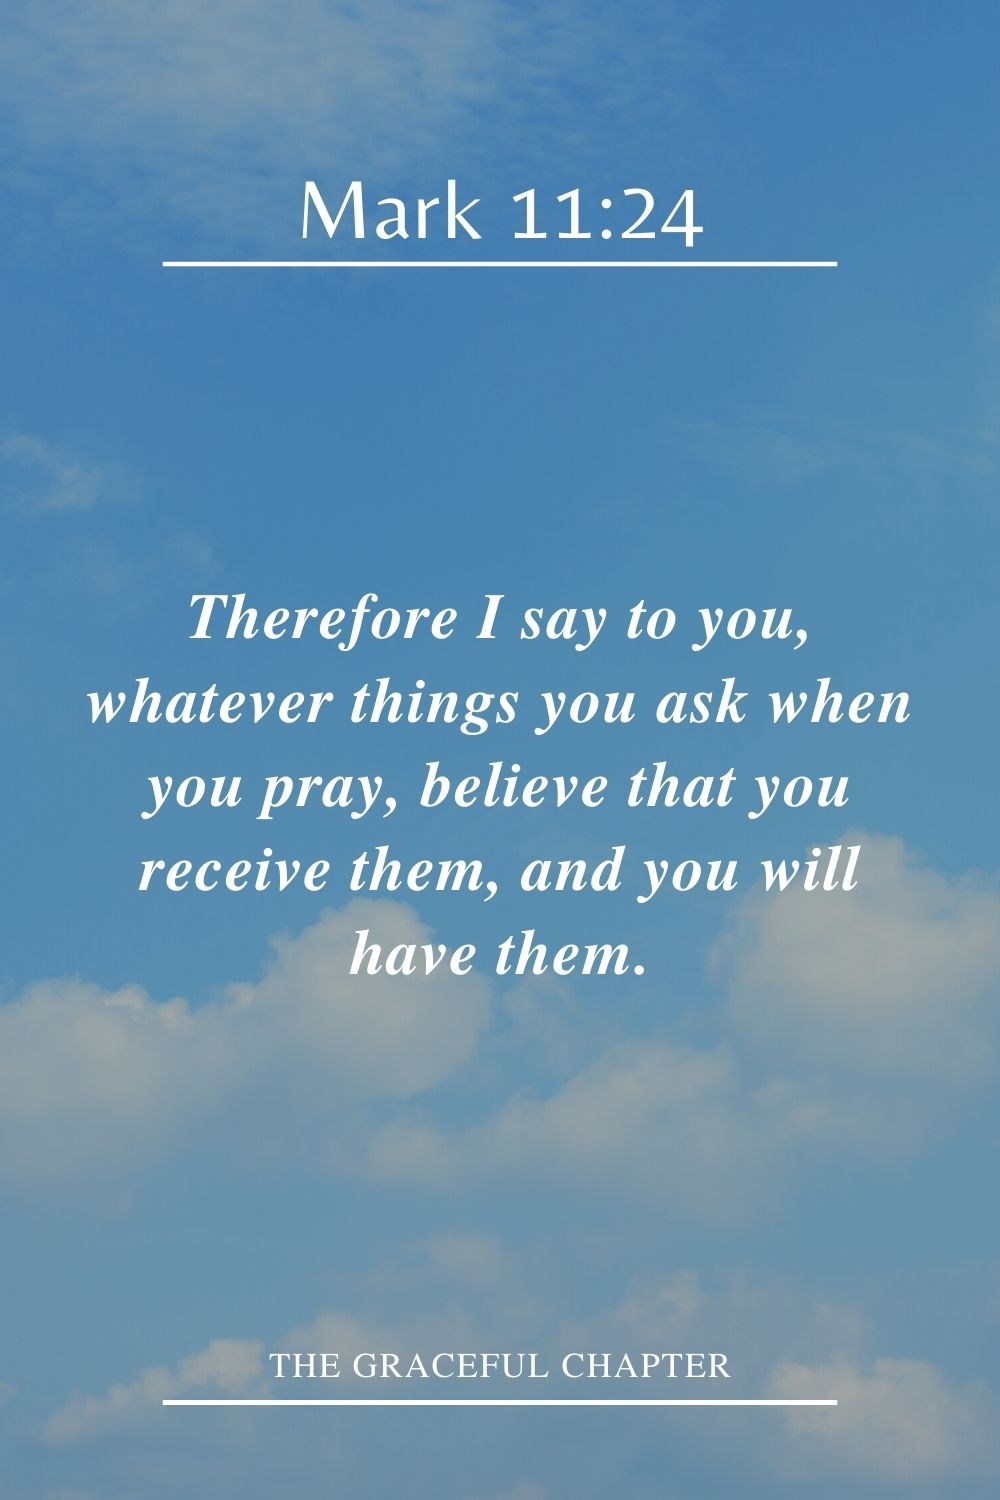 Therefore I say to you, whatever things you ask when you pray, believe that you receive them, and you will have them. Mark 11:24